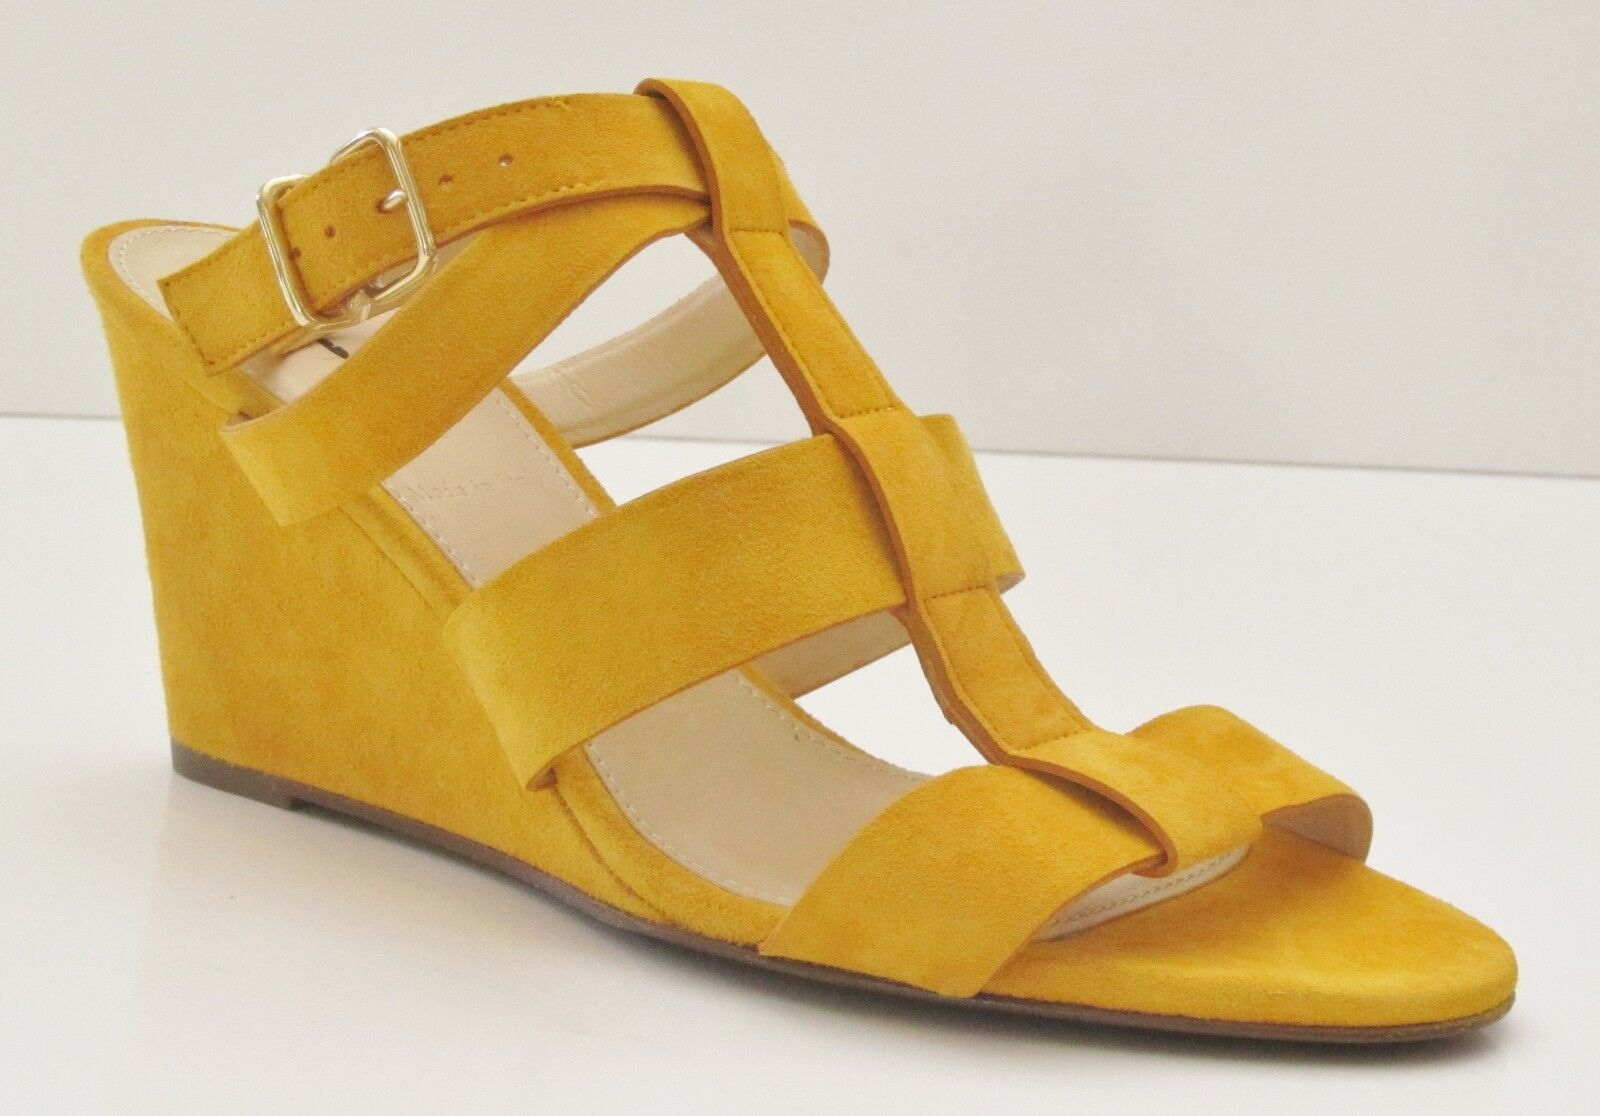 J Crew Olympia Suede Wedges 6.5 Bright Marigold